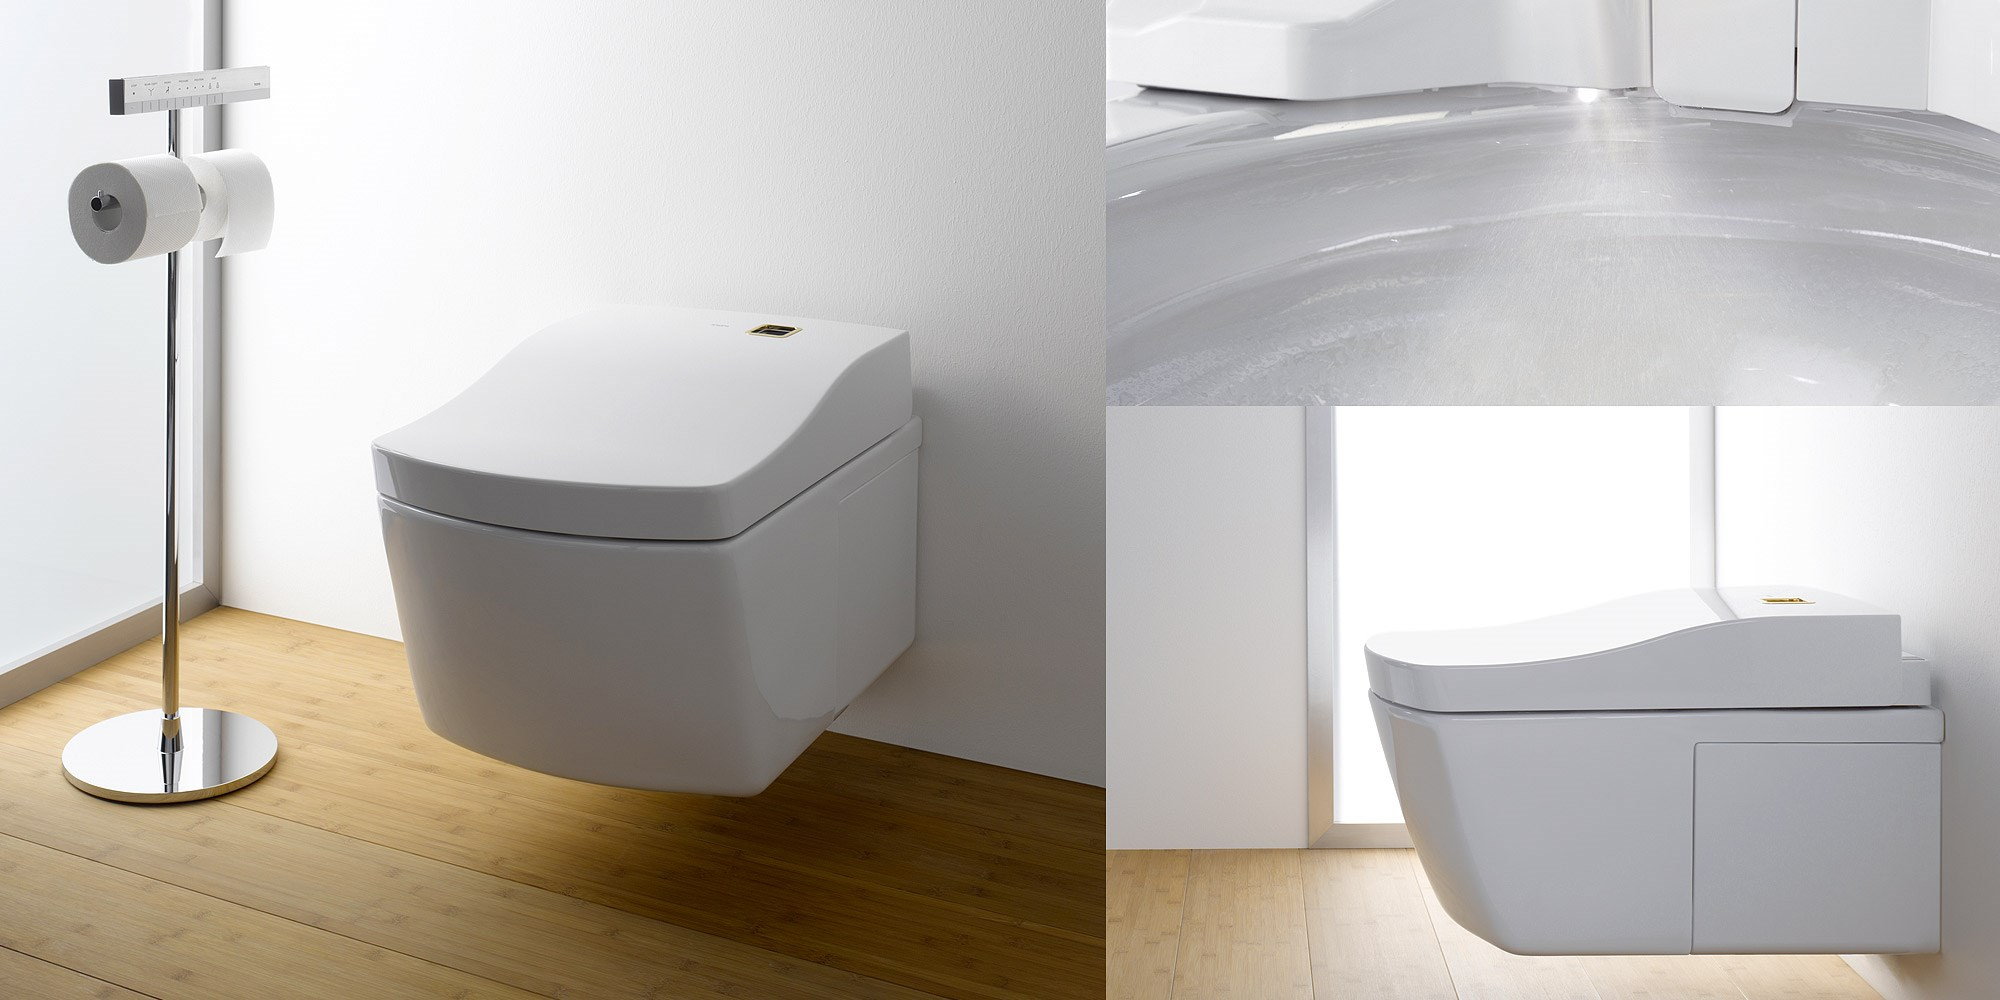 Toto bathrooms at Channel Island Ceramics, Guernsey